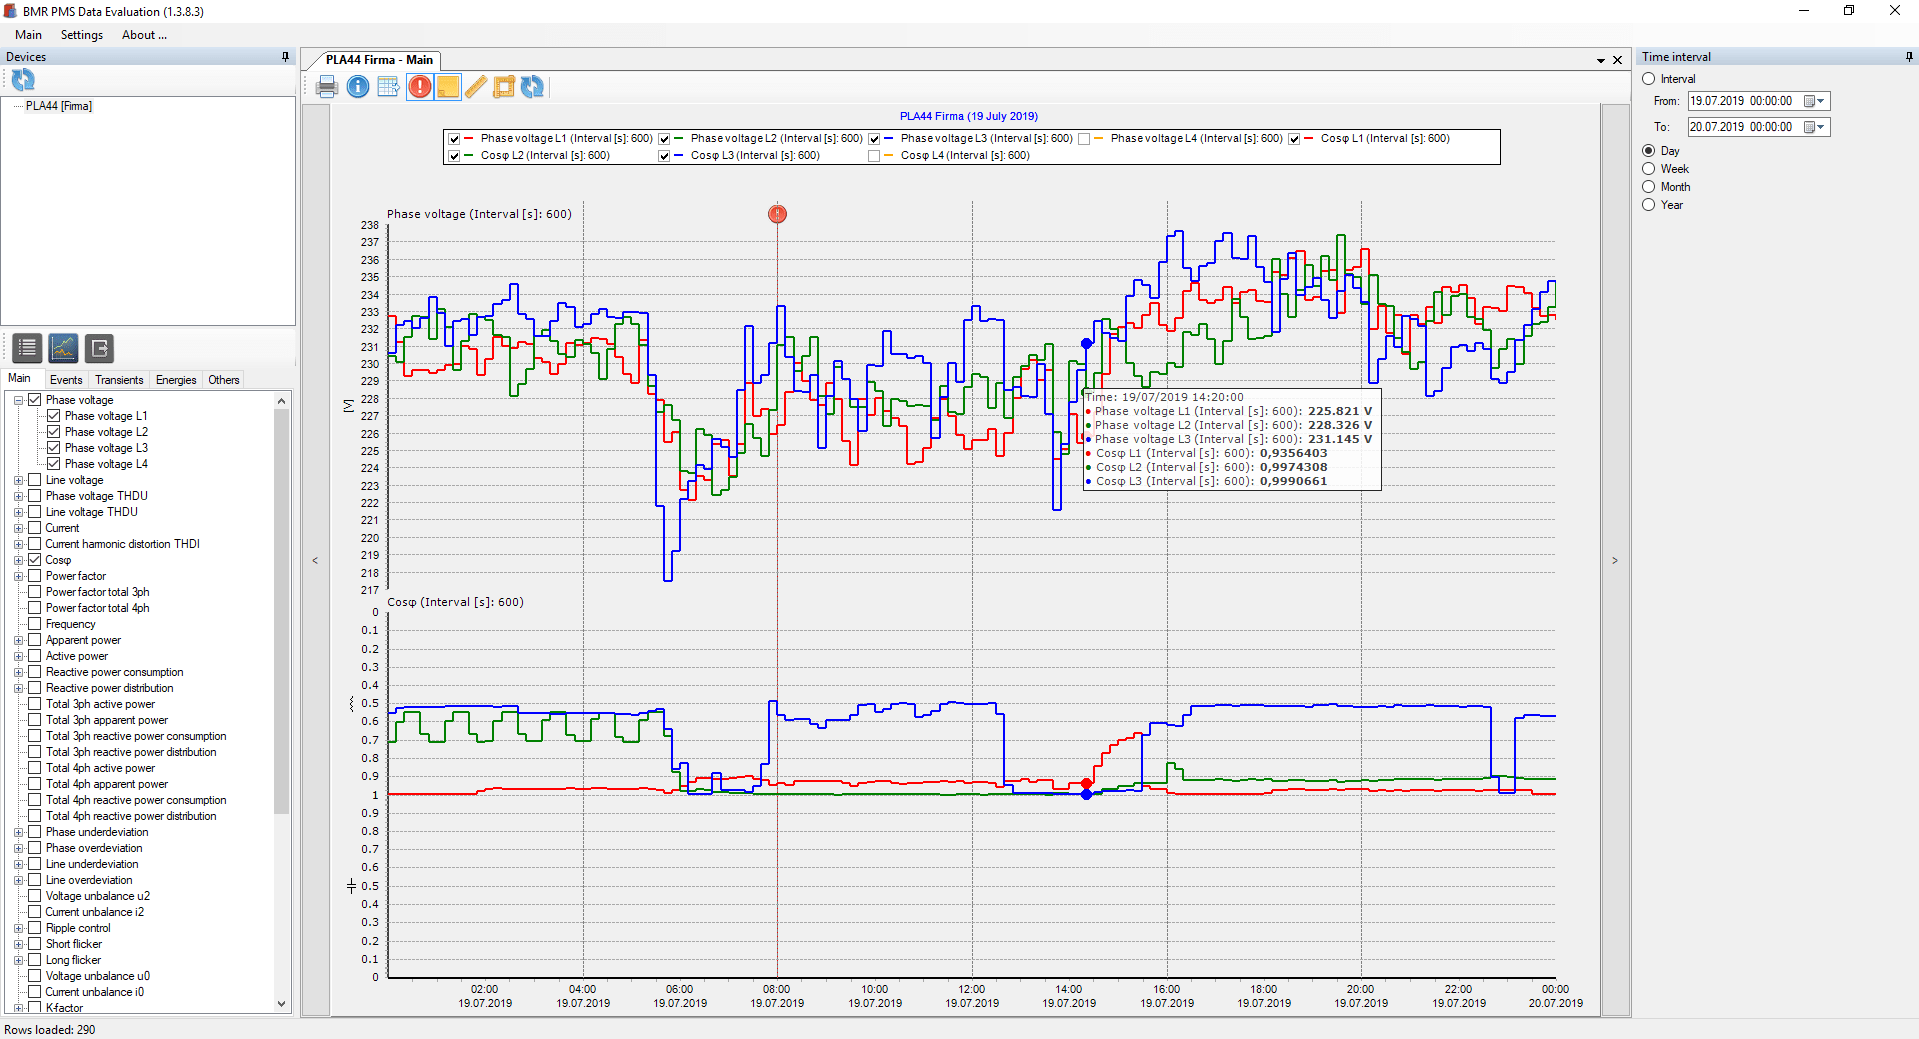 PMS data evaluation